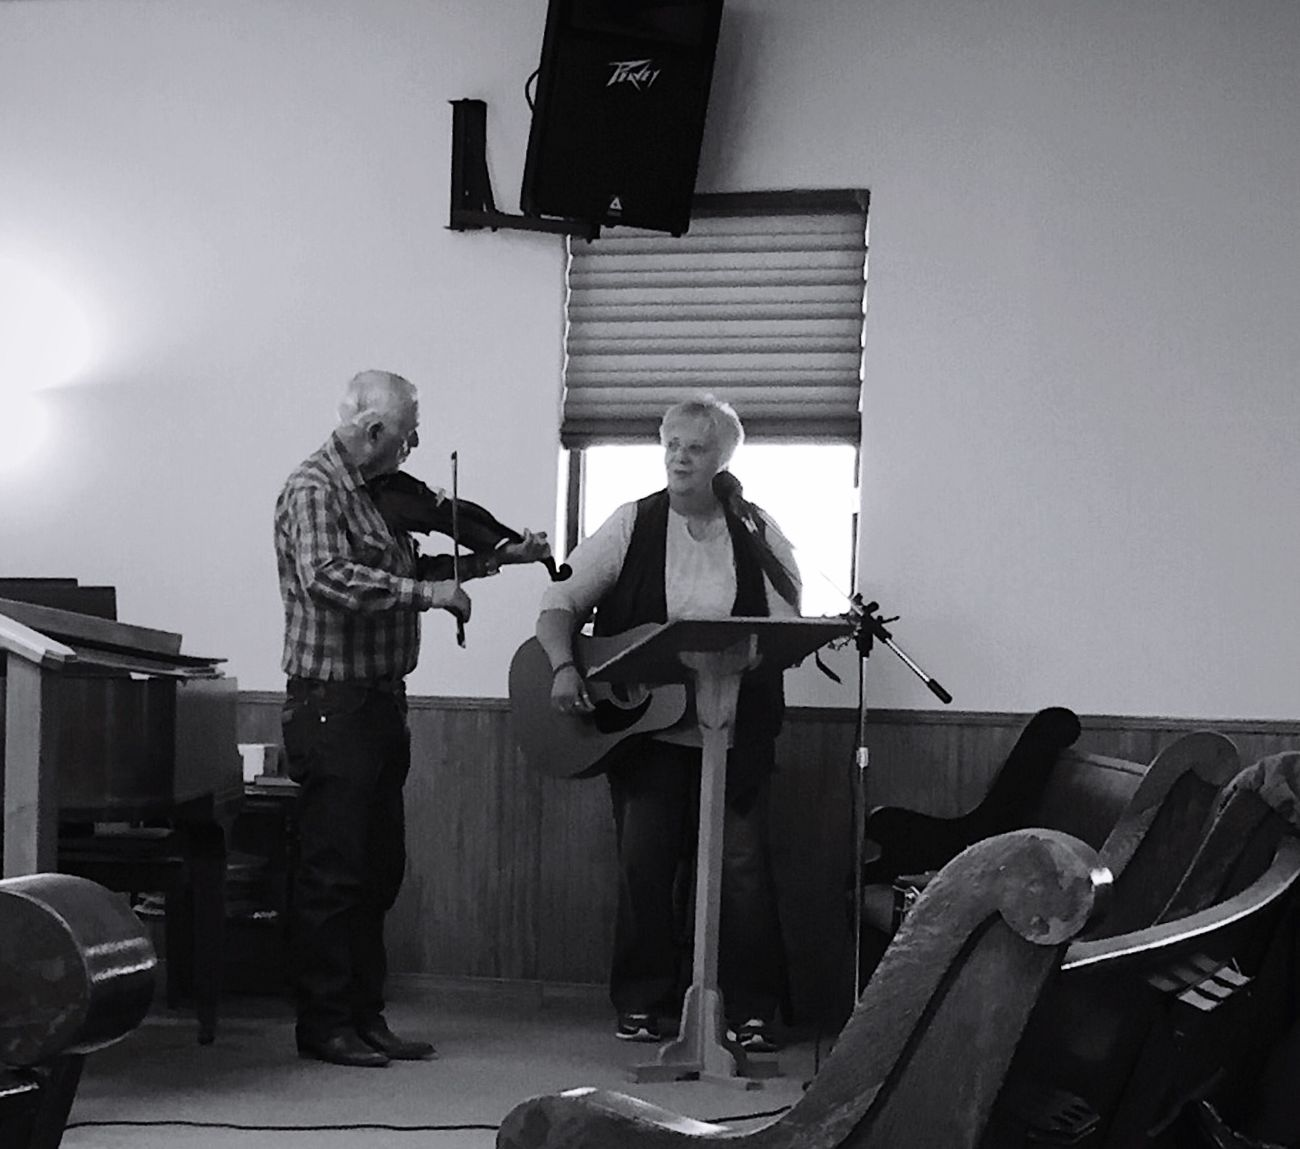 """The Fiddler and The Guitar Player"" An unusual duo performs a traditional gospel song using the classic instrument's of fiddle and guitar. Fiddle Fiddler Guitar Guitarist Gospel Music Duo Music Country Living Smalltown Black And White Blackandwhite Blackandwhite Photography"